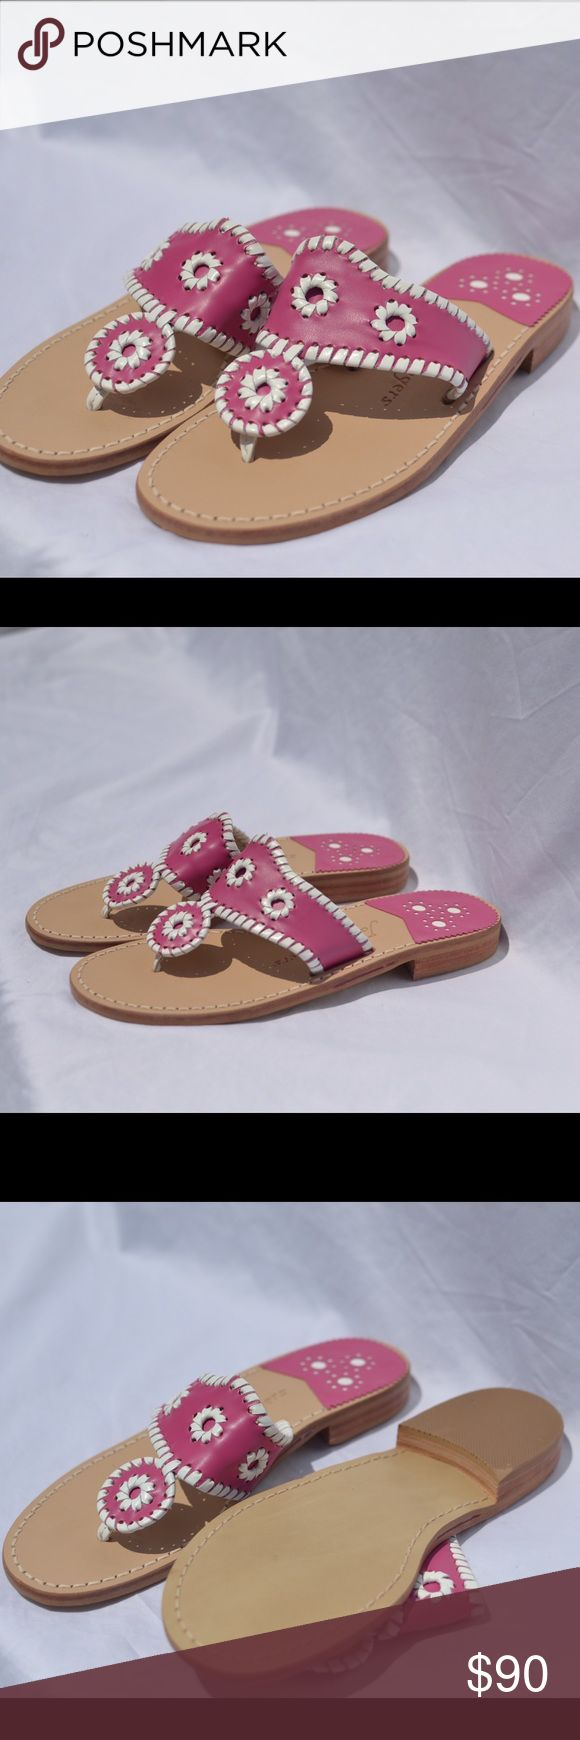 New Jack Rogers Navajo Sandal Size 7 There are brand new, never been worn dark pink with white trim Jack Rogers Navajo Sandal Jack Rogers Shoes Sandals